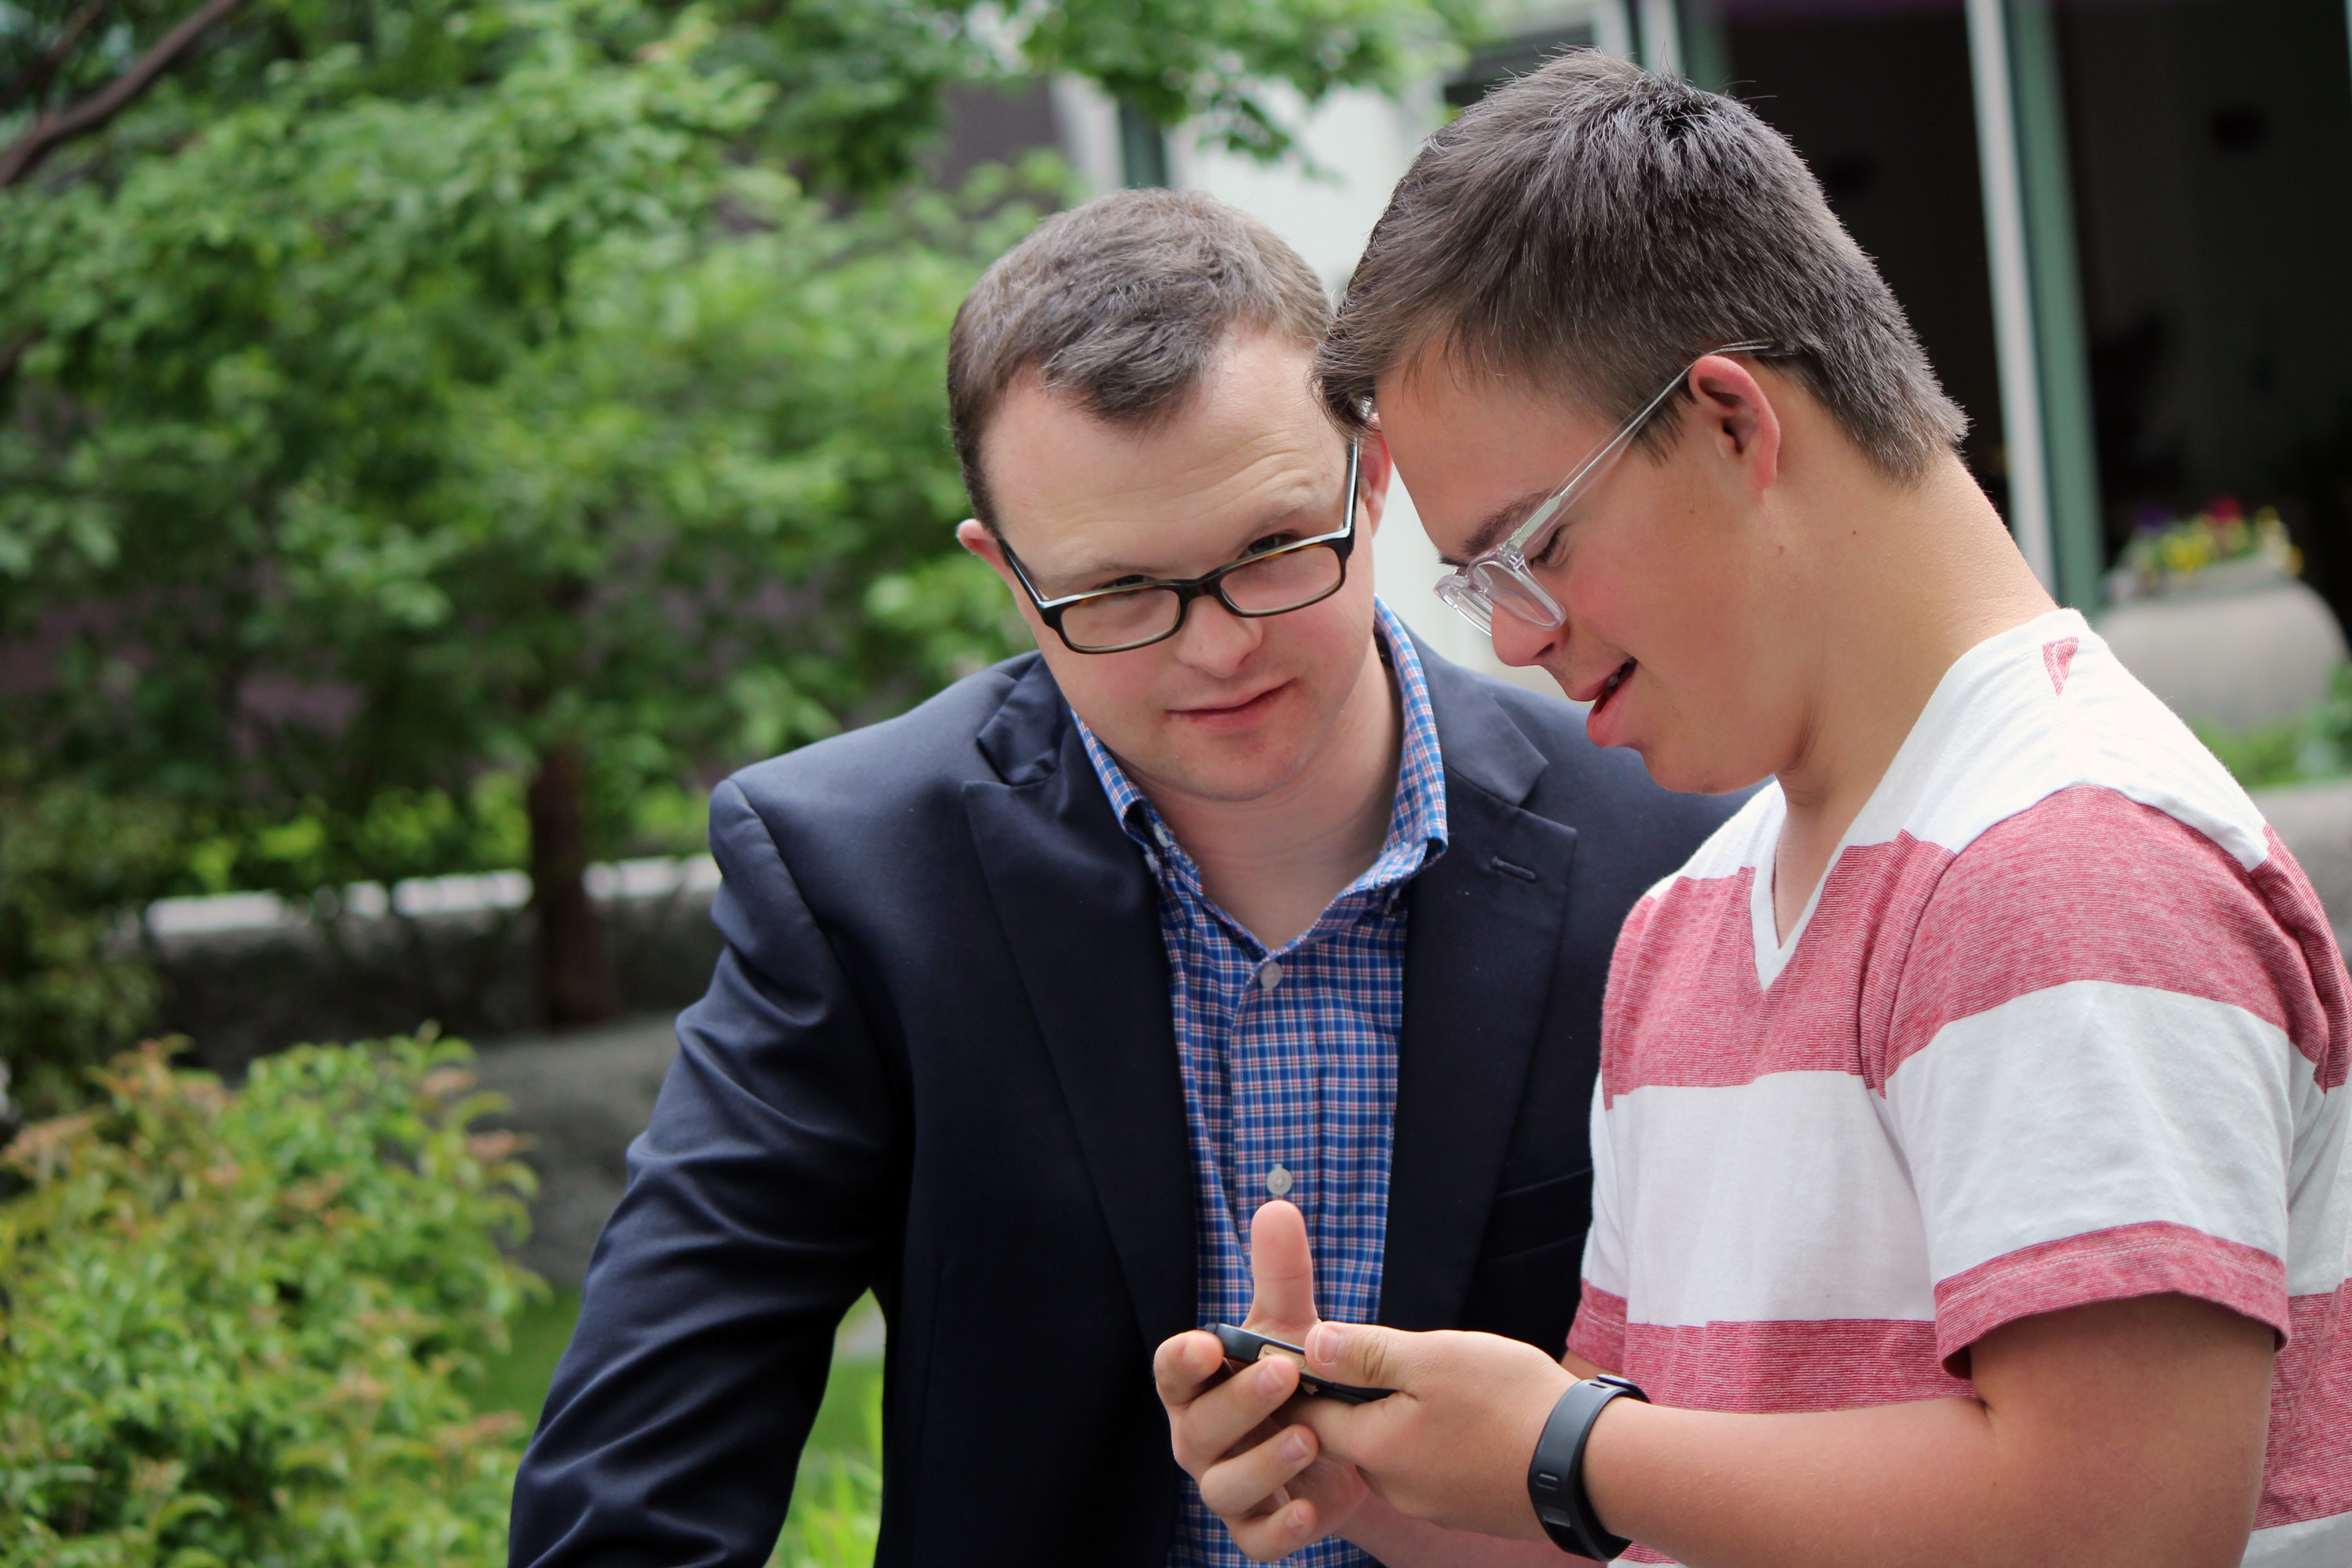 Two men with Down syndrome working on their phones.